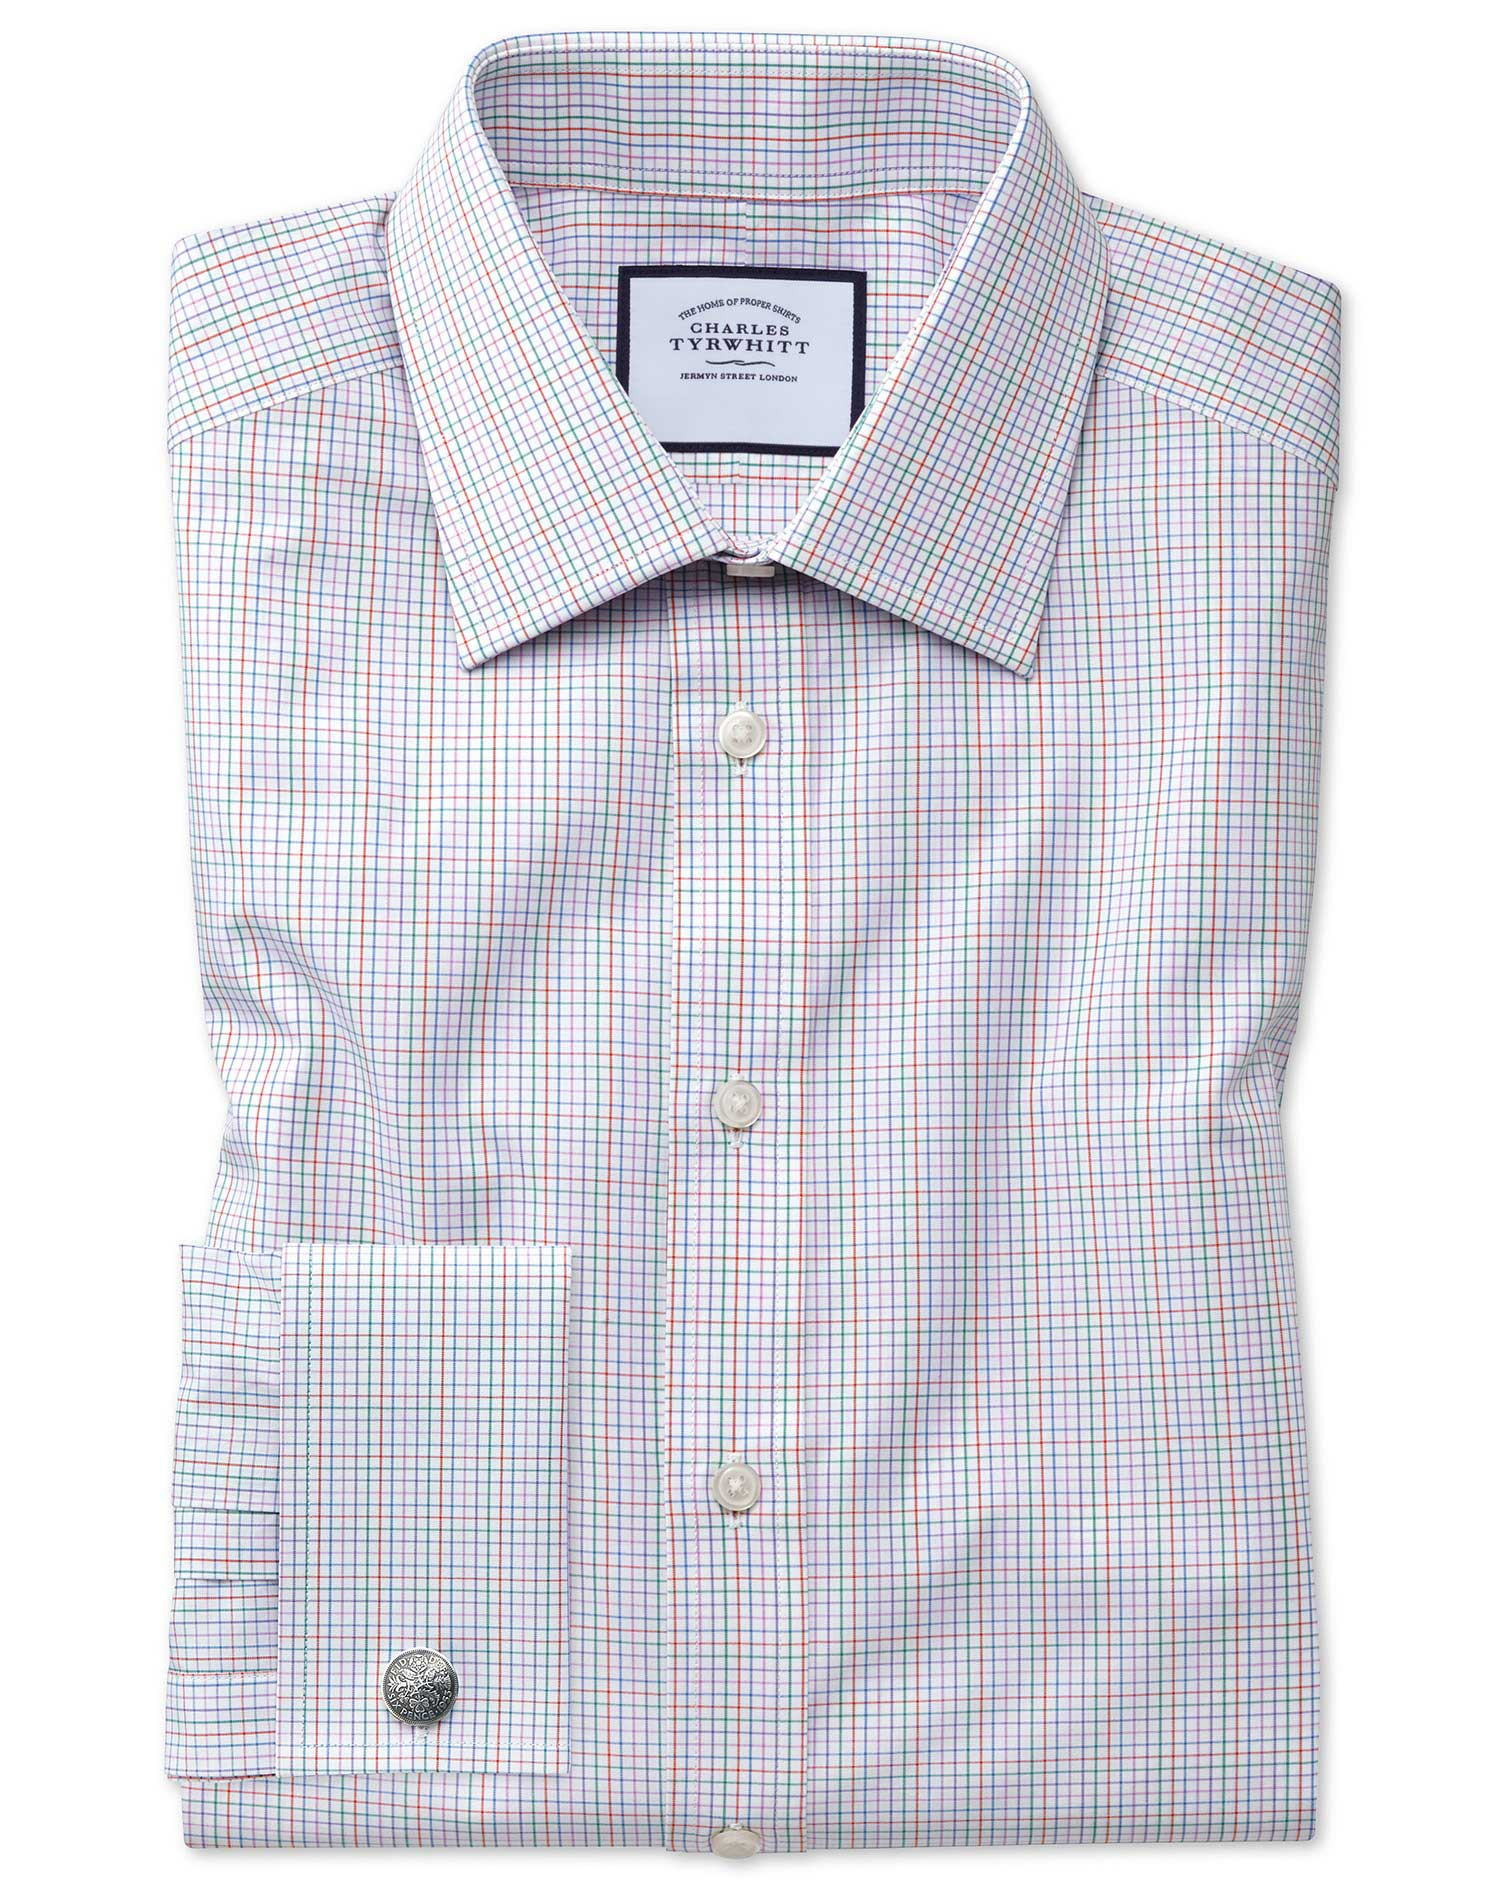 Extra Slim Fit Pink Multi Check Egyptian Cotton Formal Shirt Single Cuff Size 14.5/33 by Charles Tyr